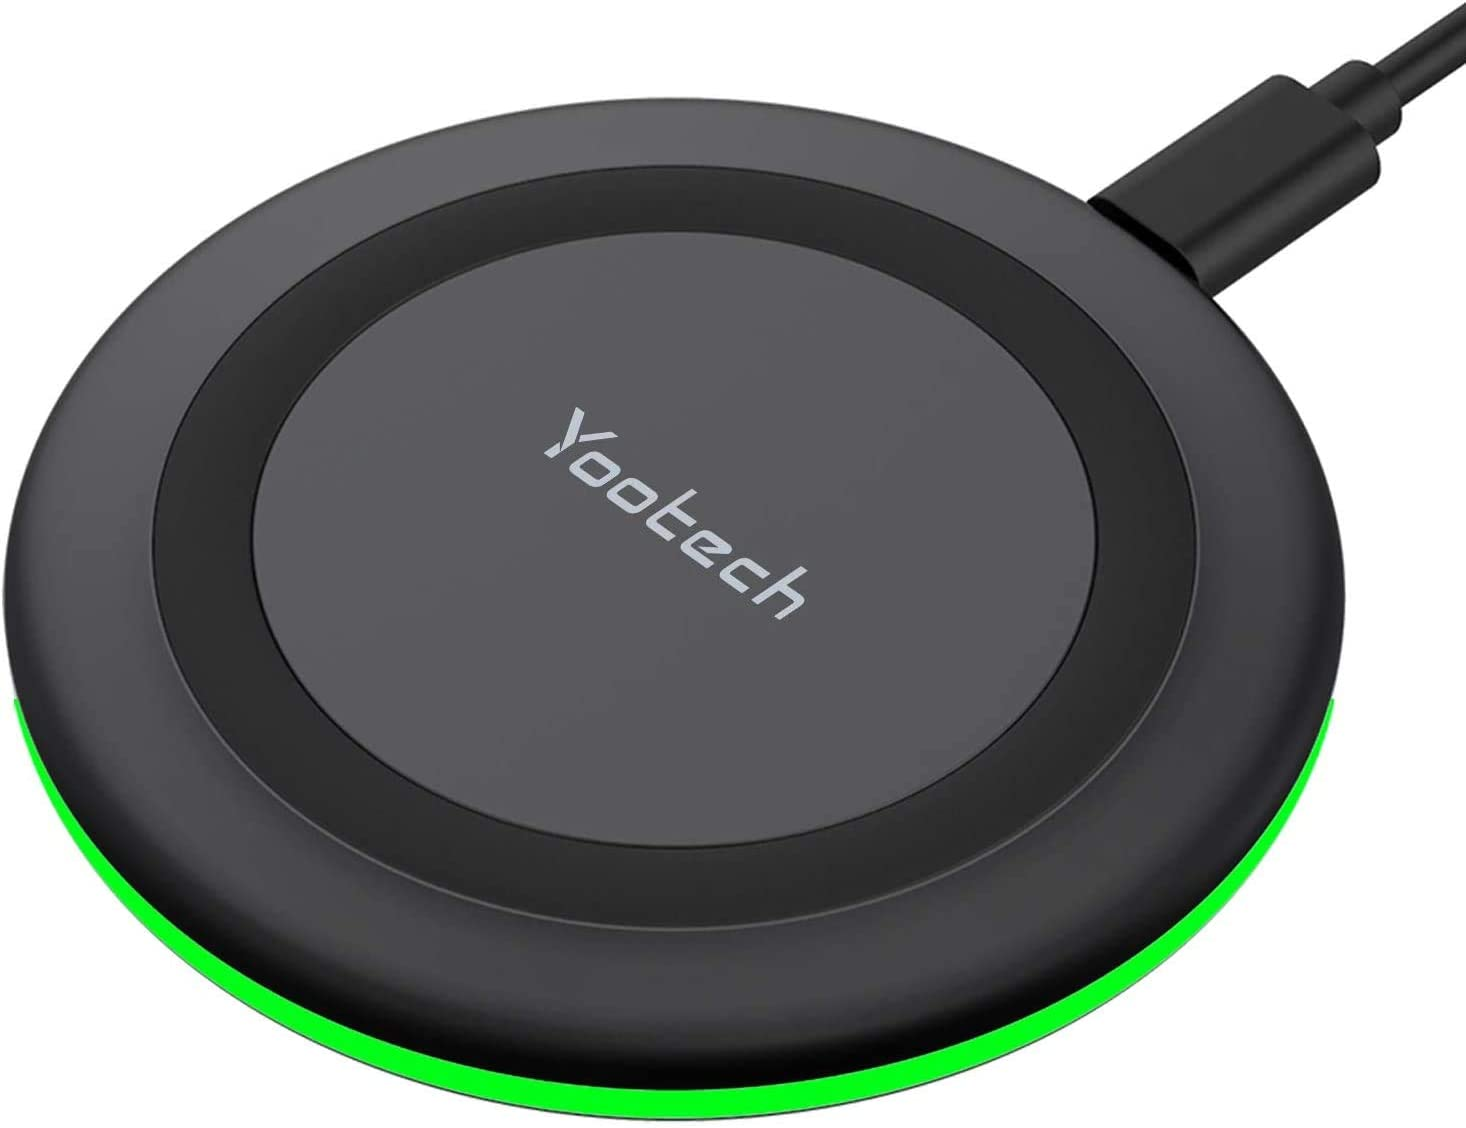 Yootech 10W Wireless Charger $8.48 Coupon